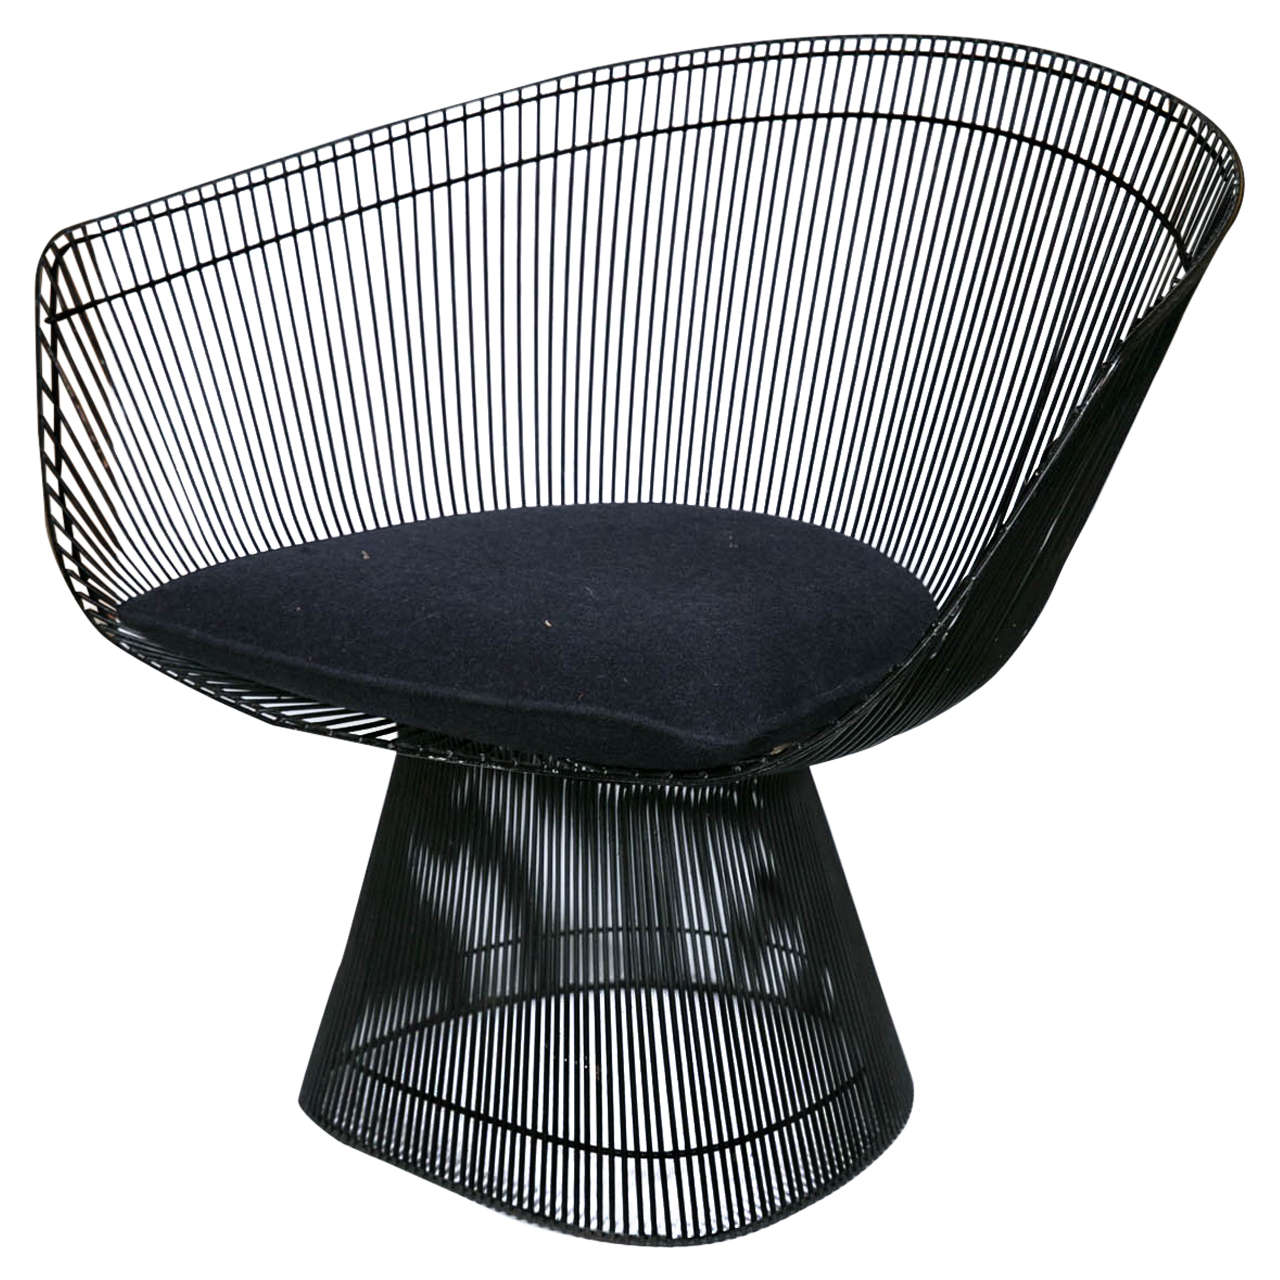 Midcentury Warren Platner Lounge Chair for Knoll at 1stdibs